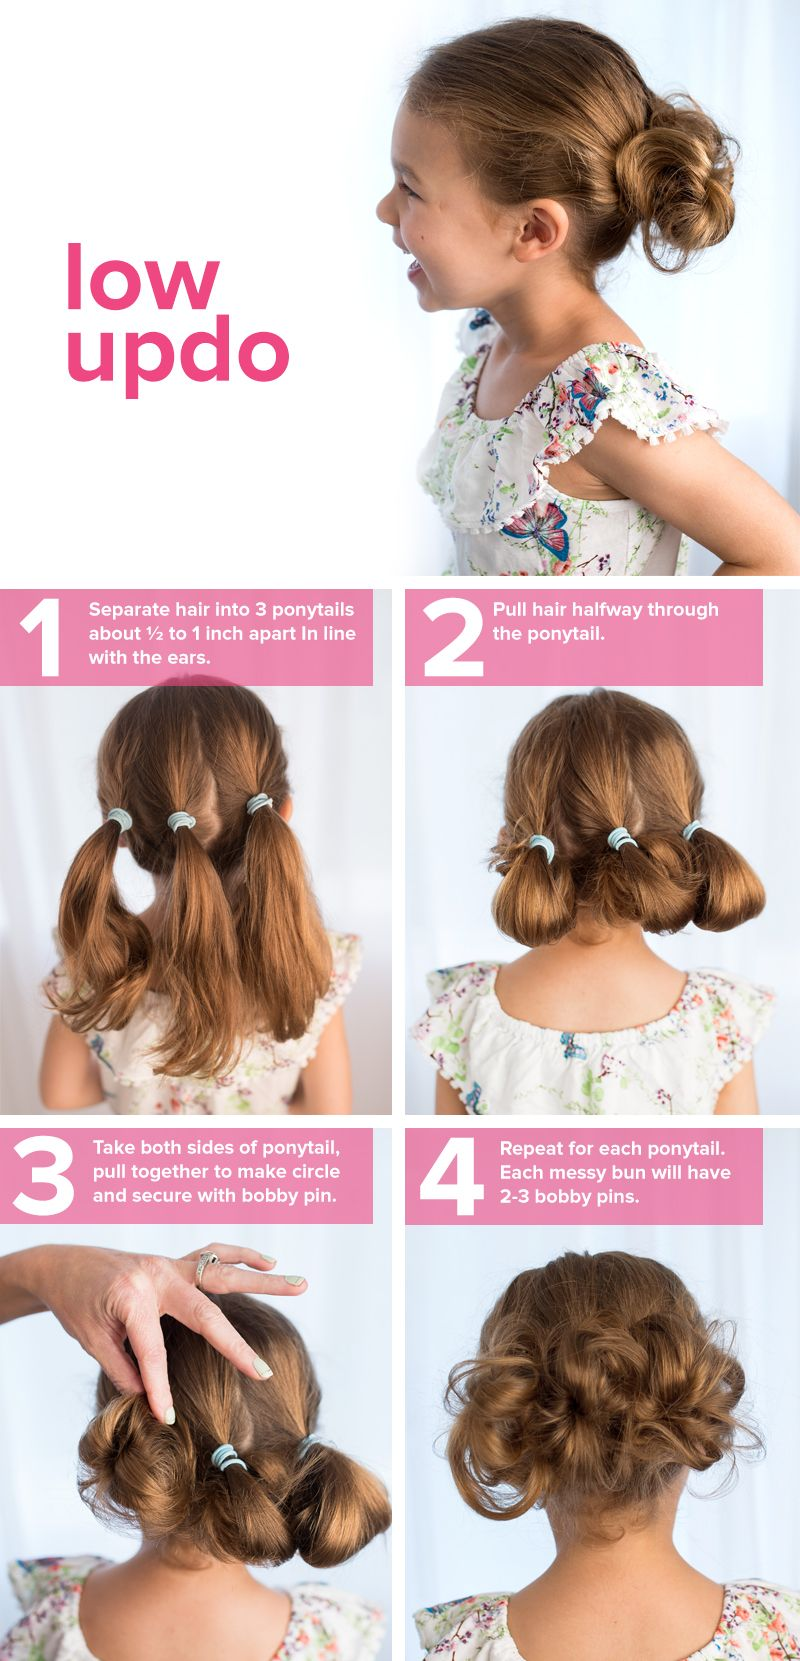 fast easy cute hairstyles for girls low updo updo and kids s